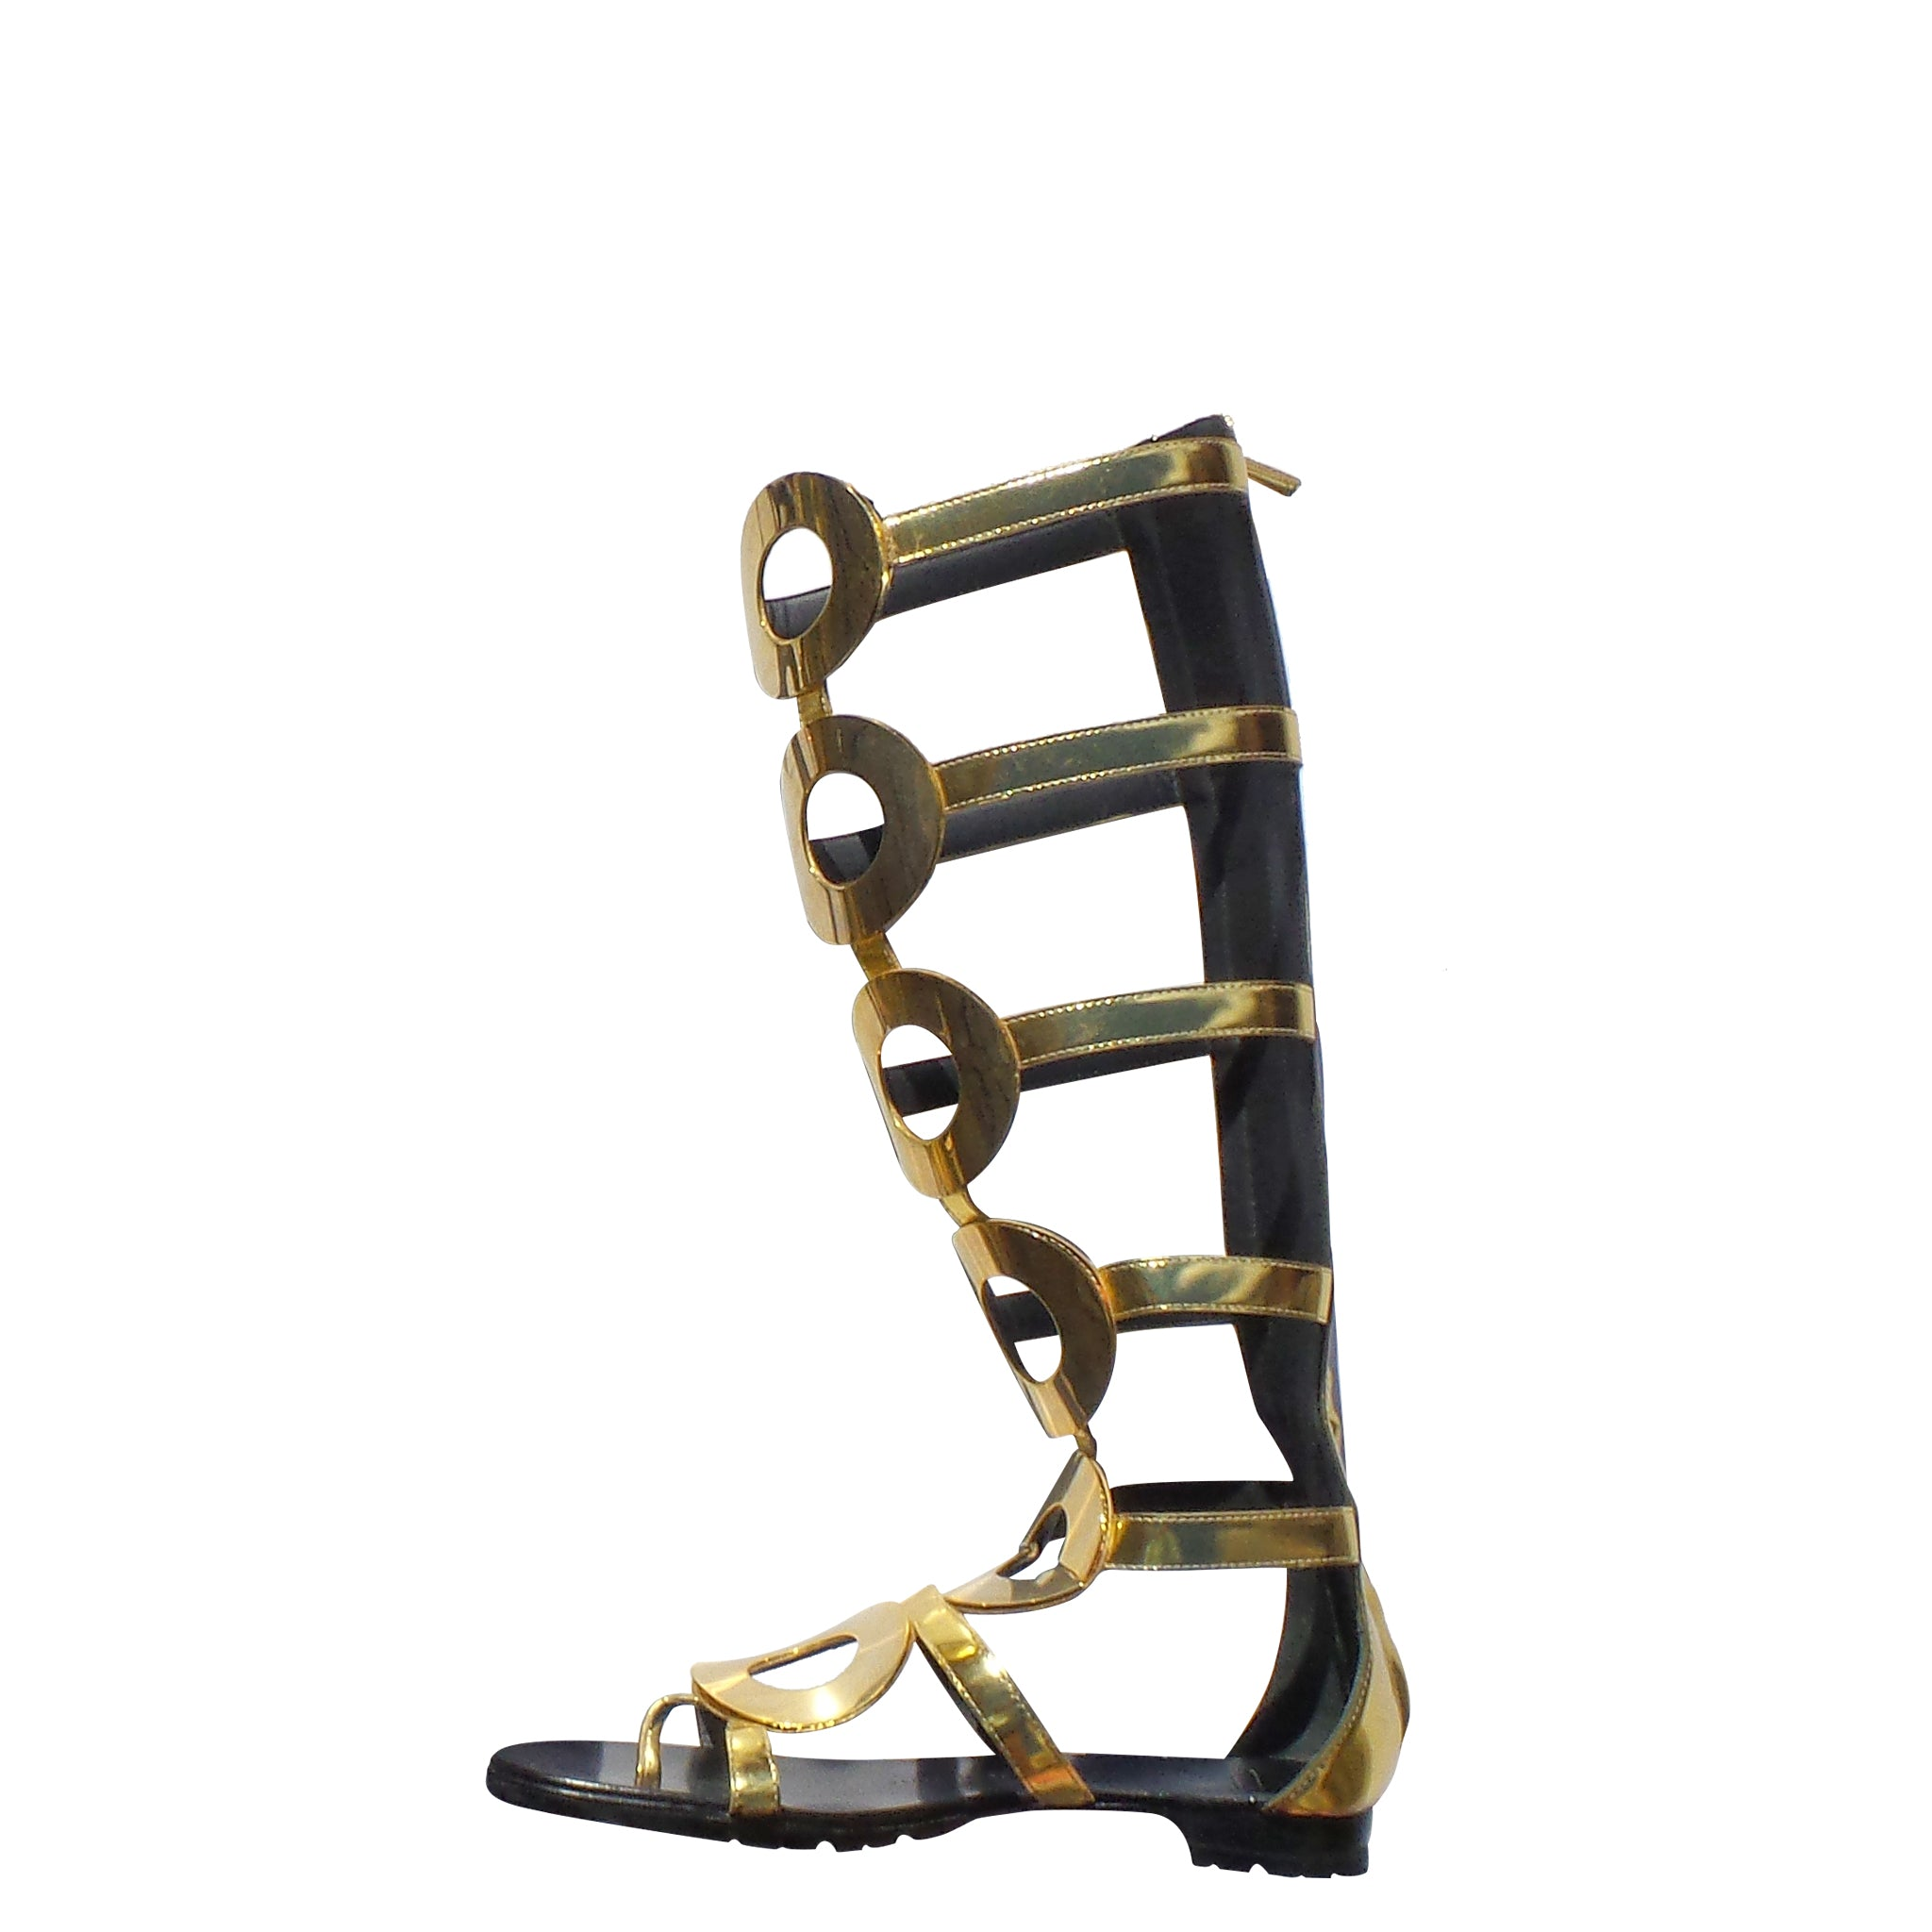 f79e4e0a5207  Sold  GIUSEPPE ZANOTTI Rylee Metallic Gold Leather Gladiator Knee Hig –  Encore Resale.com